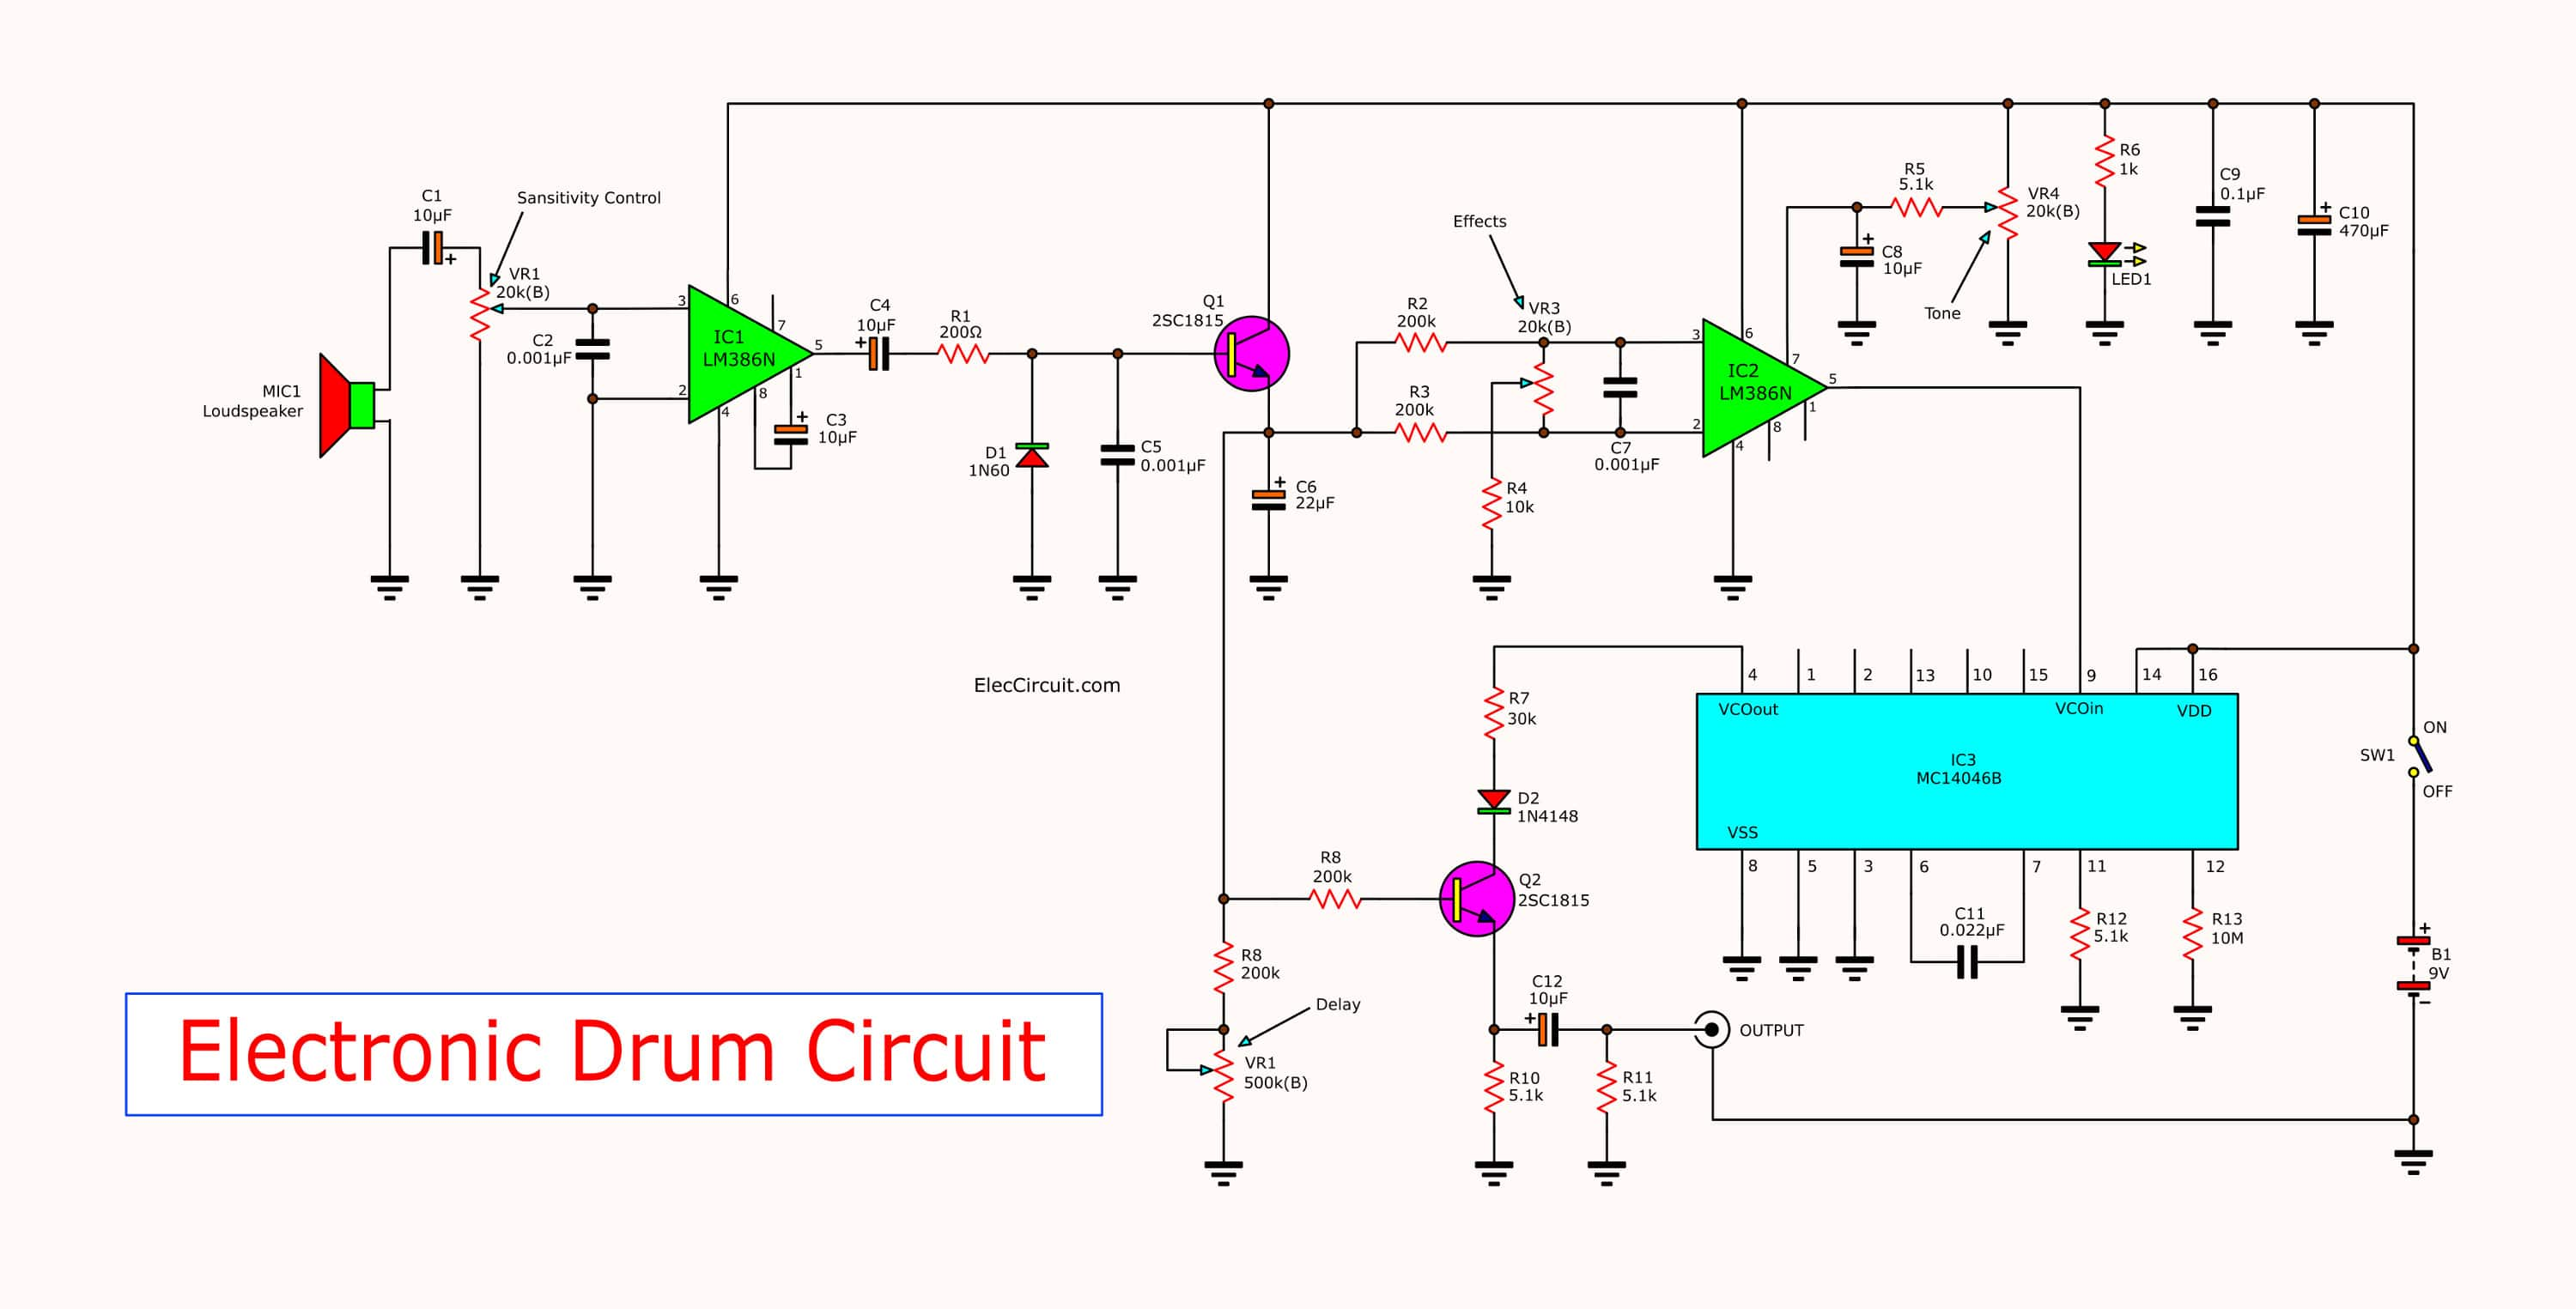 Simple Electronic Drum Circuit Using Mc14046 Eleccircuit Touch Switch Cd4011 Circuits And Diagram Pcb Layout The Small By